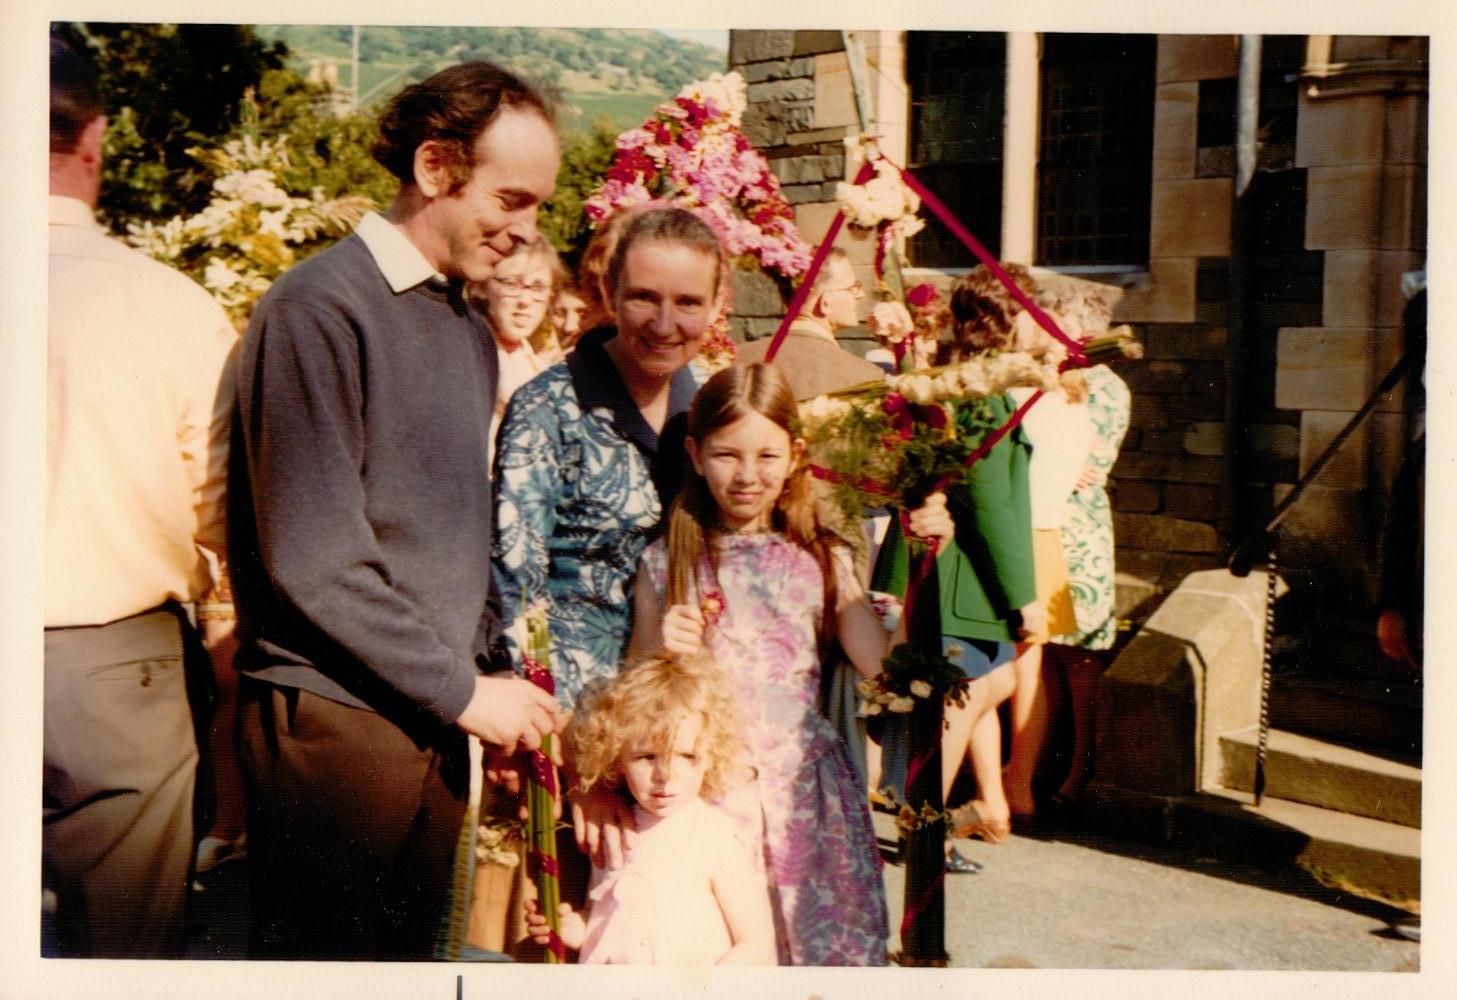 The Price Family of Oaklands Guest House in Ambleside, Cumbria